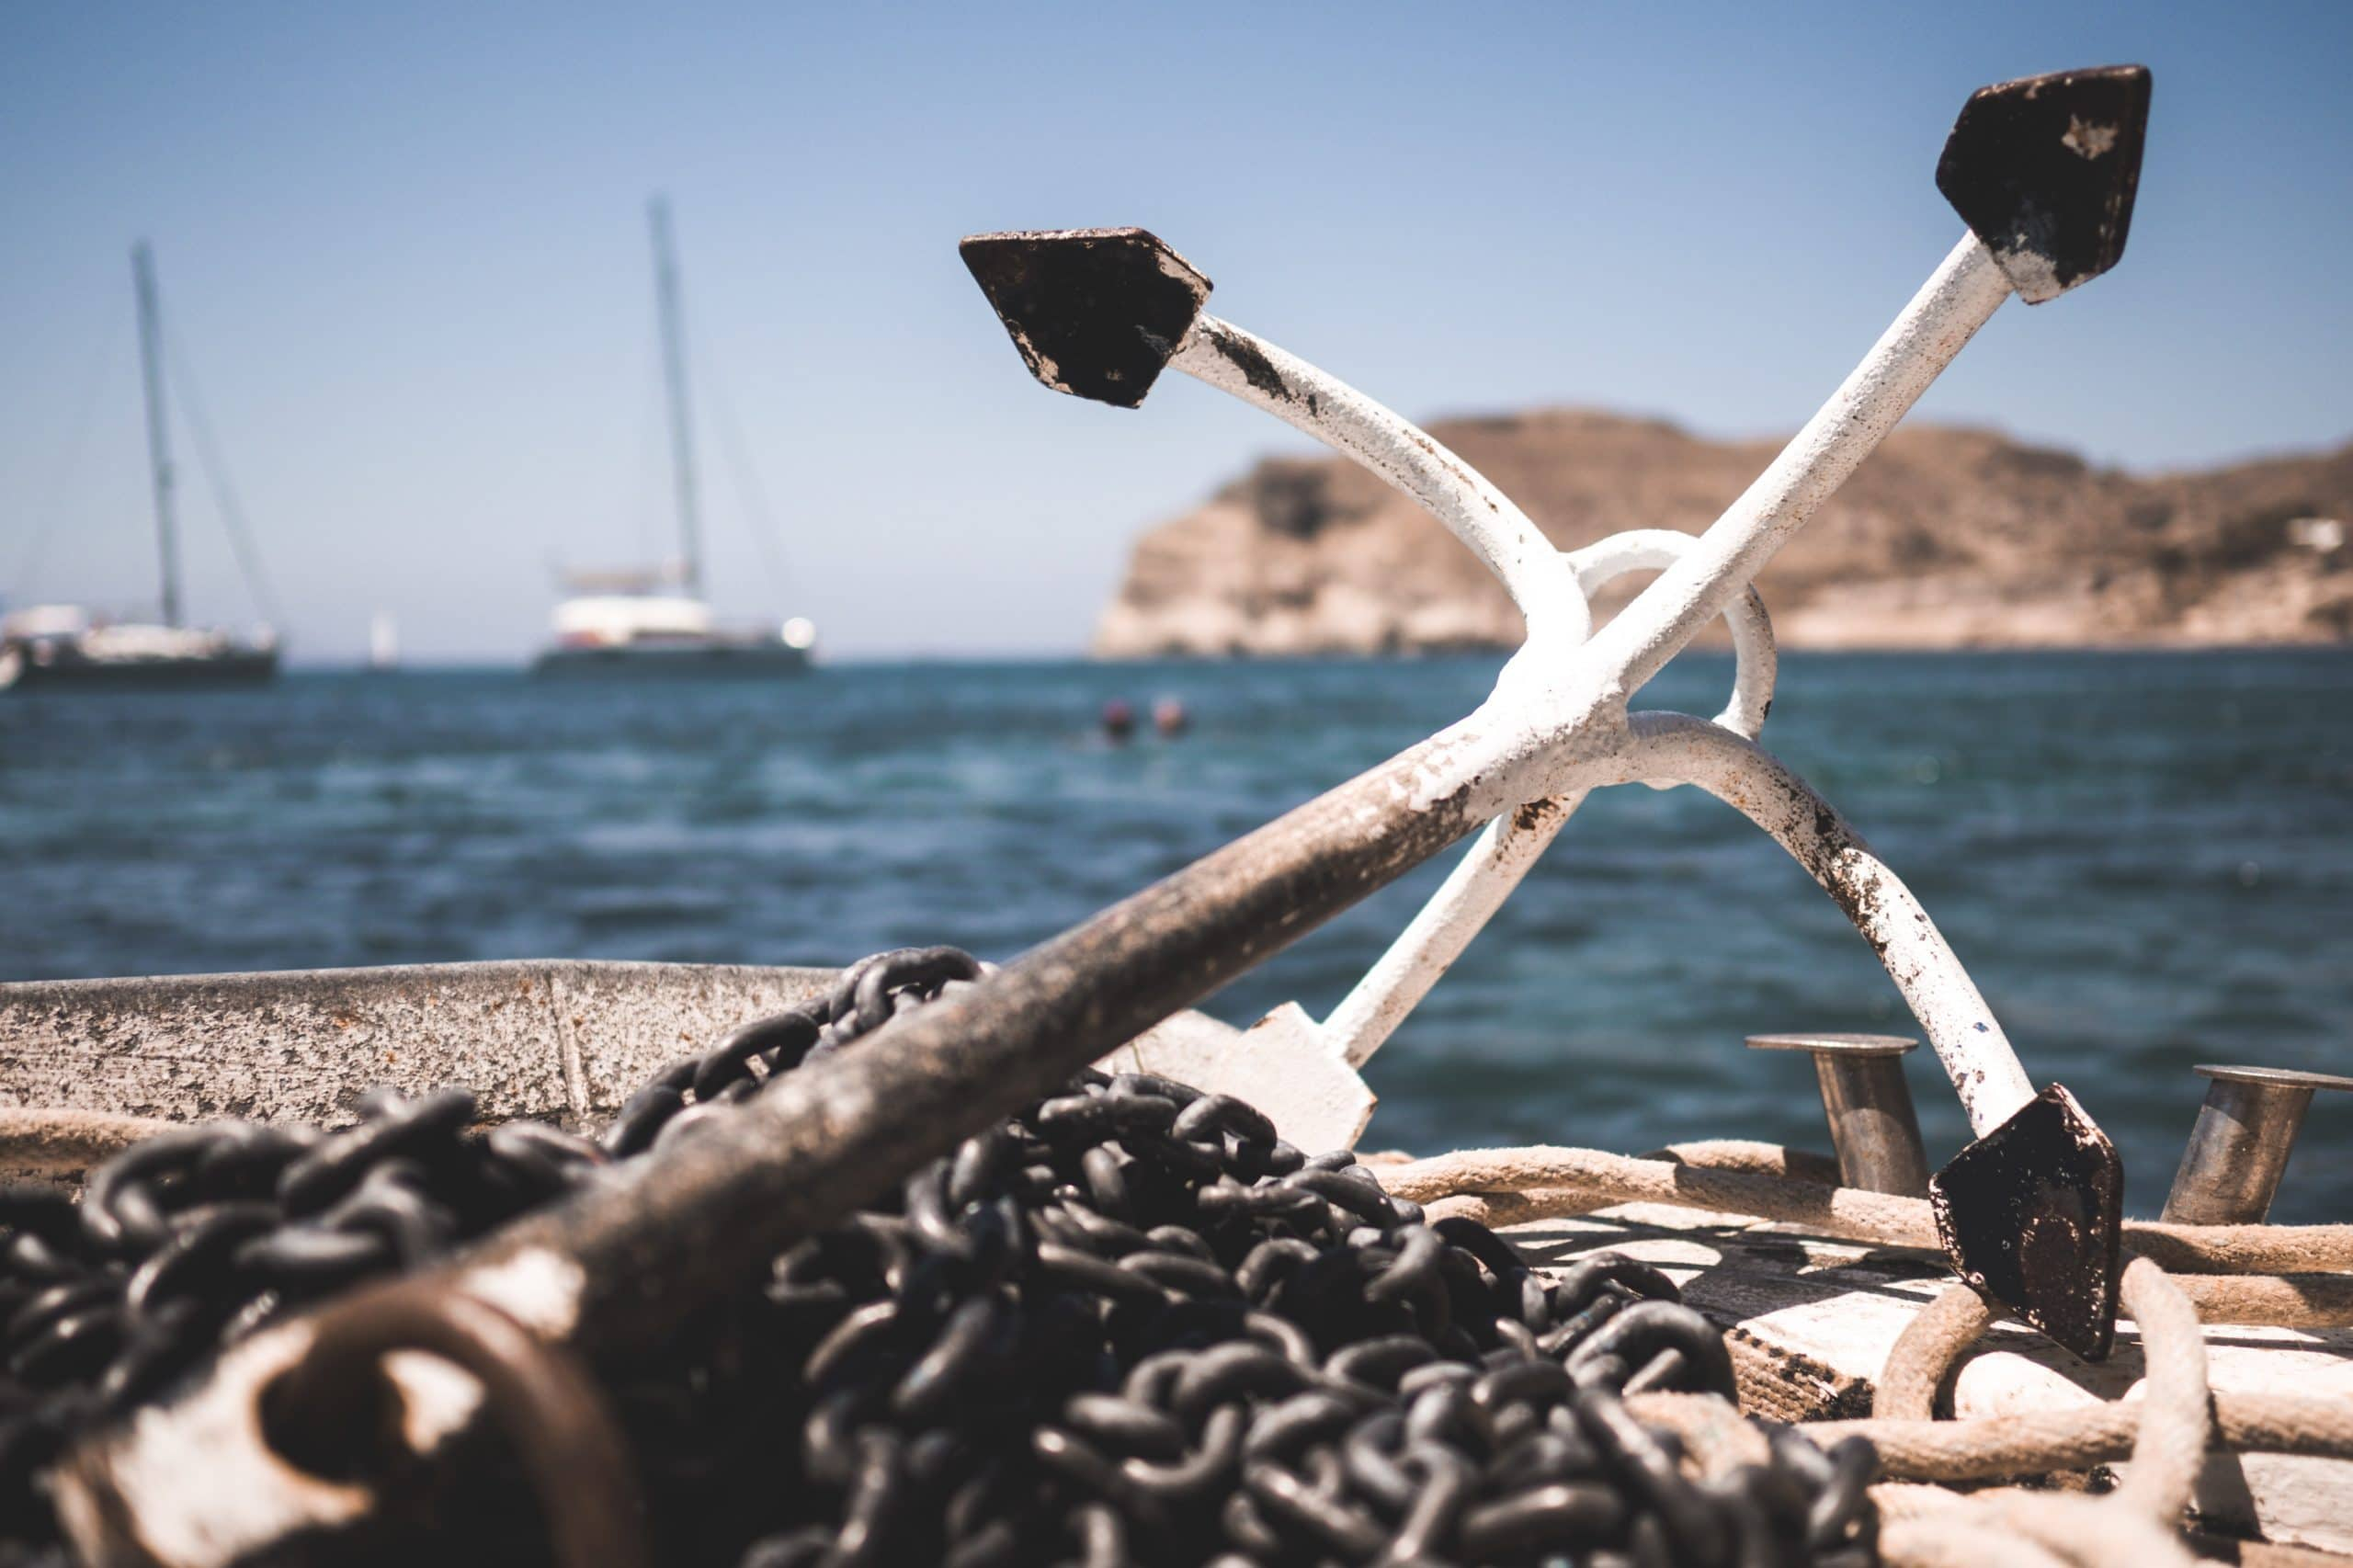 Real anchor and chains on a deck by the sea